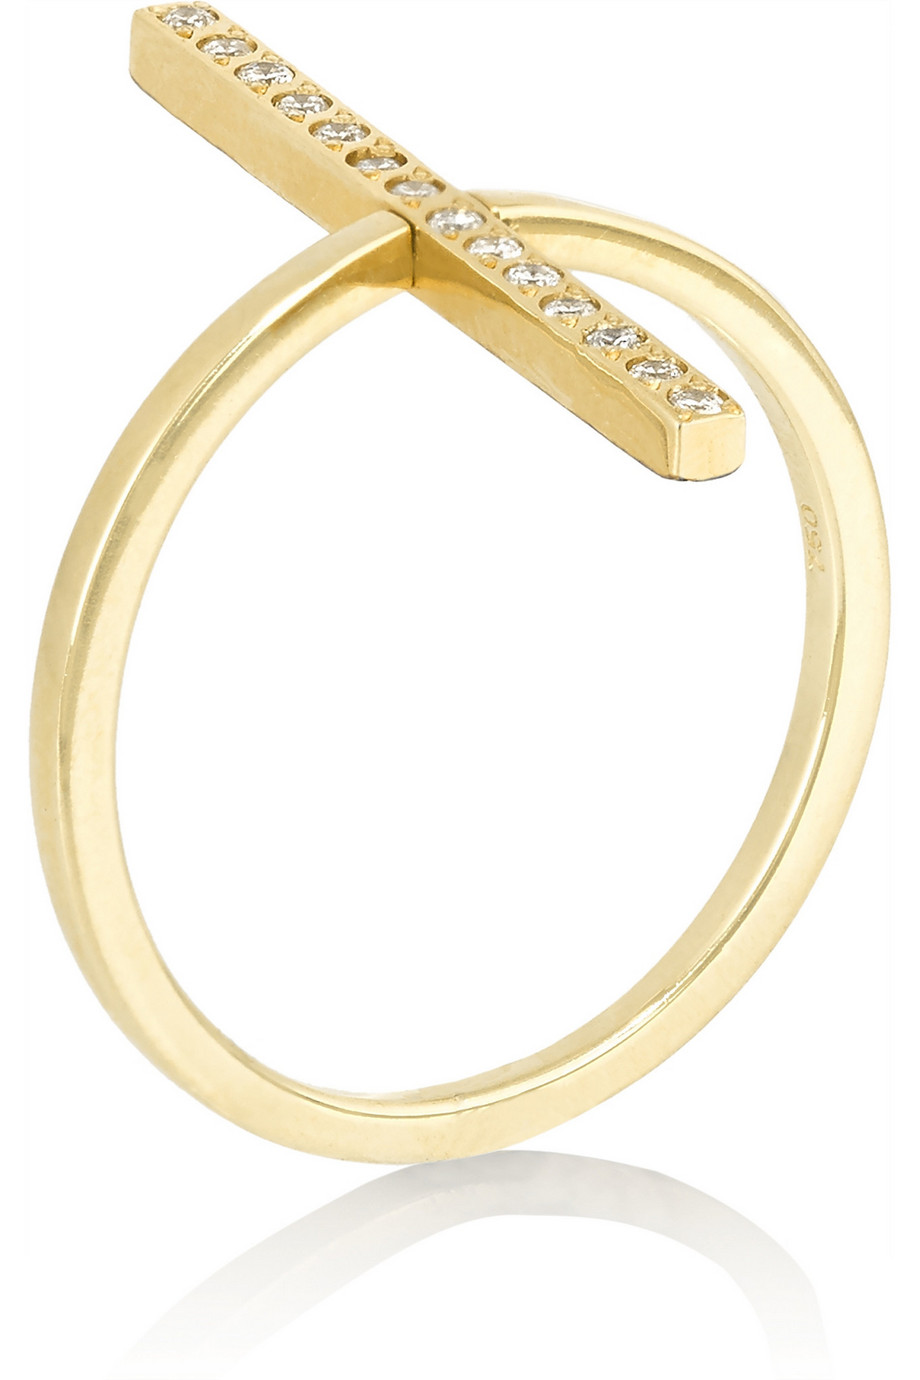 Ileana Makri Reversible 18-Karat Gold Diamond Ring, Women's, Size: 56